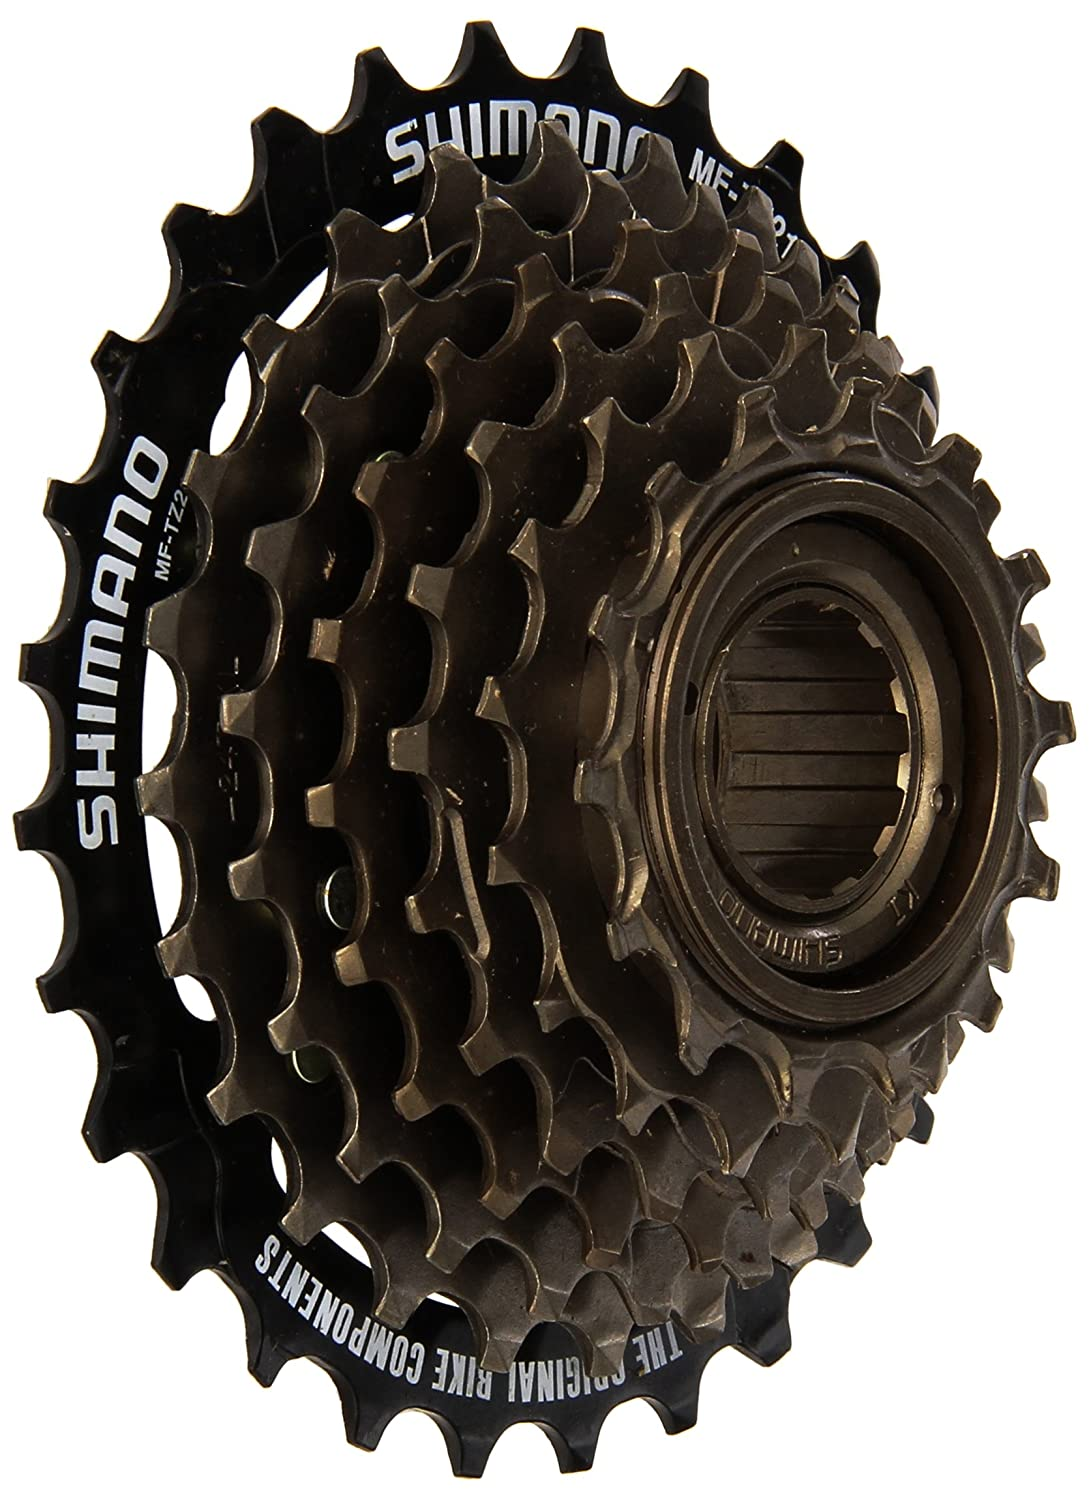 Silver/black Sporting Goods Sunrun 11sp Cassette 11-42t